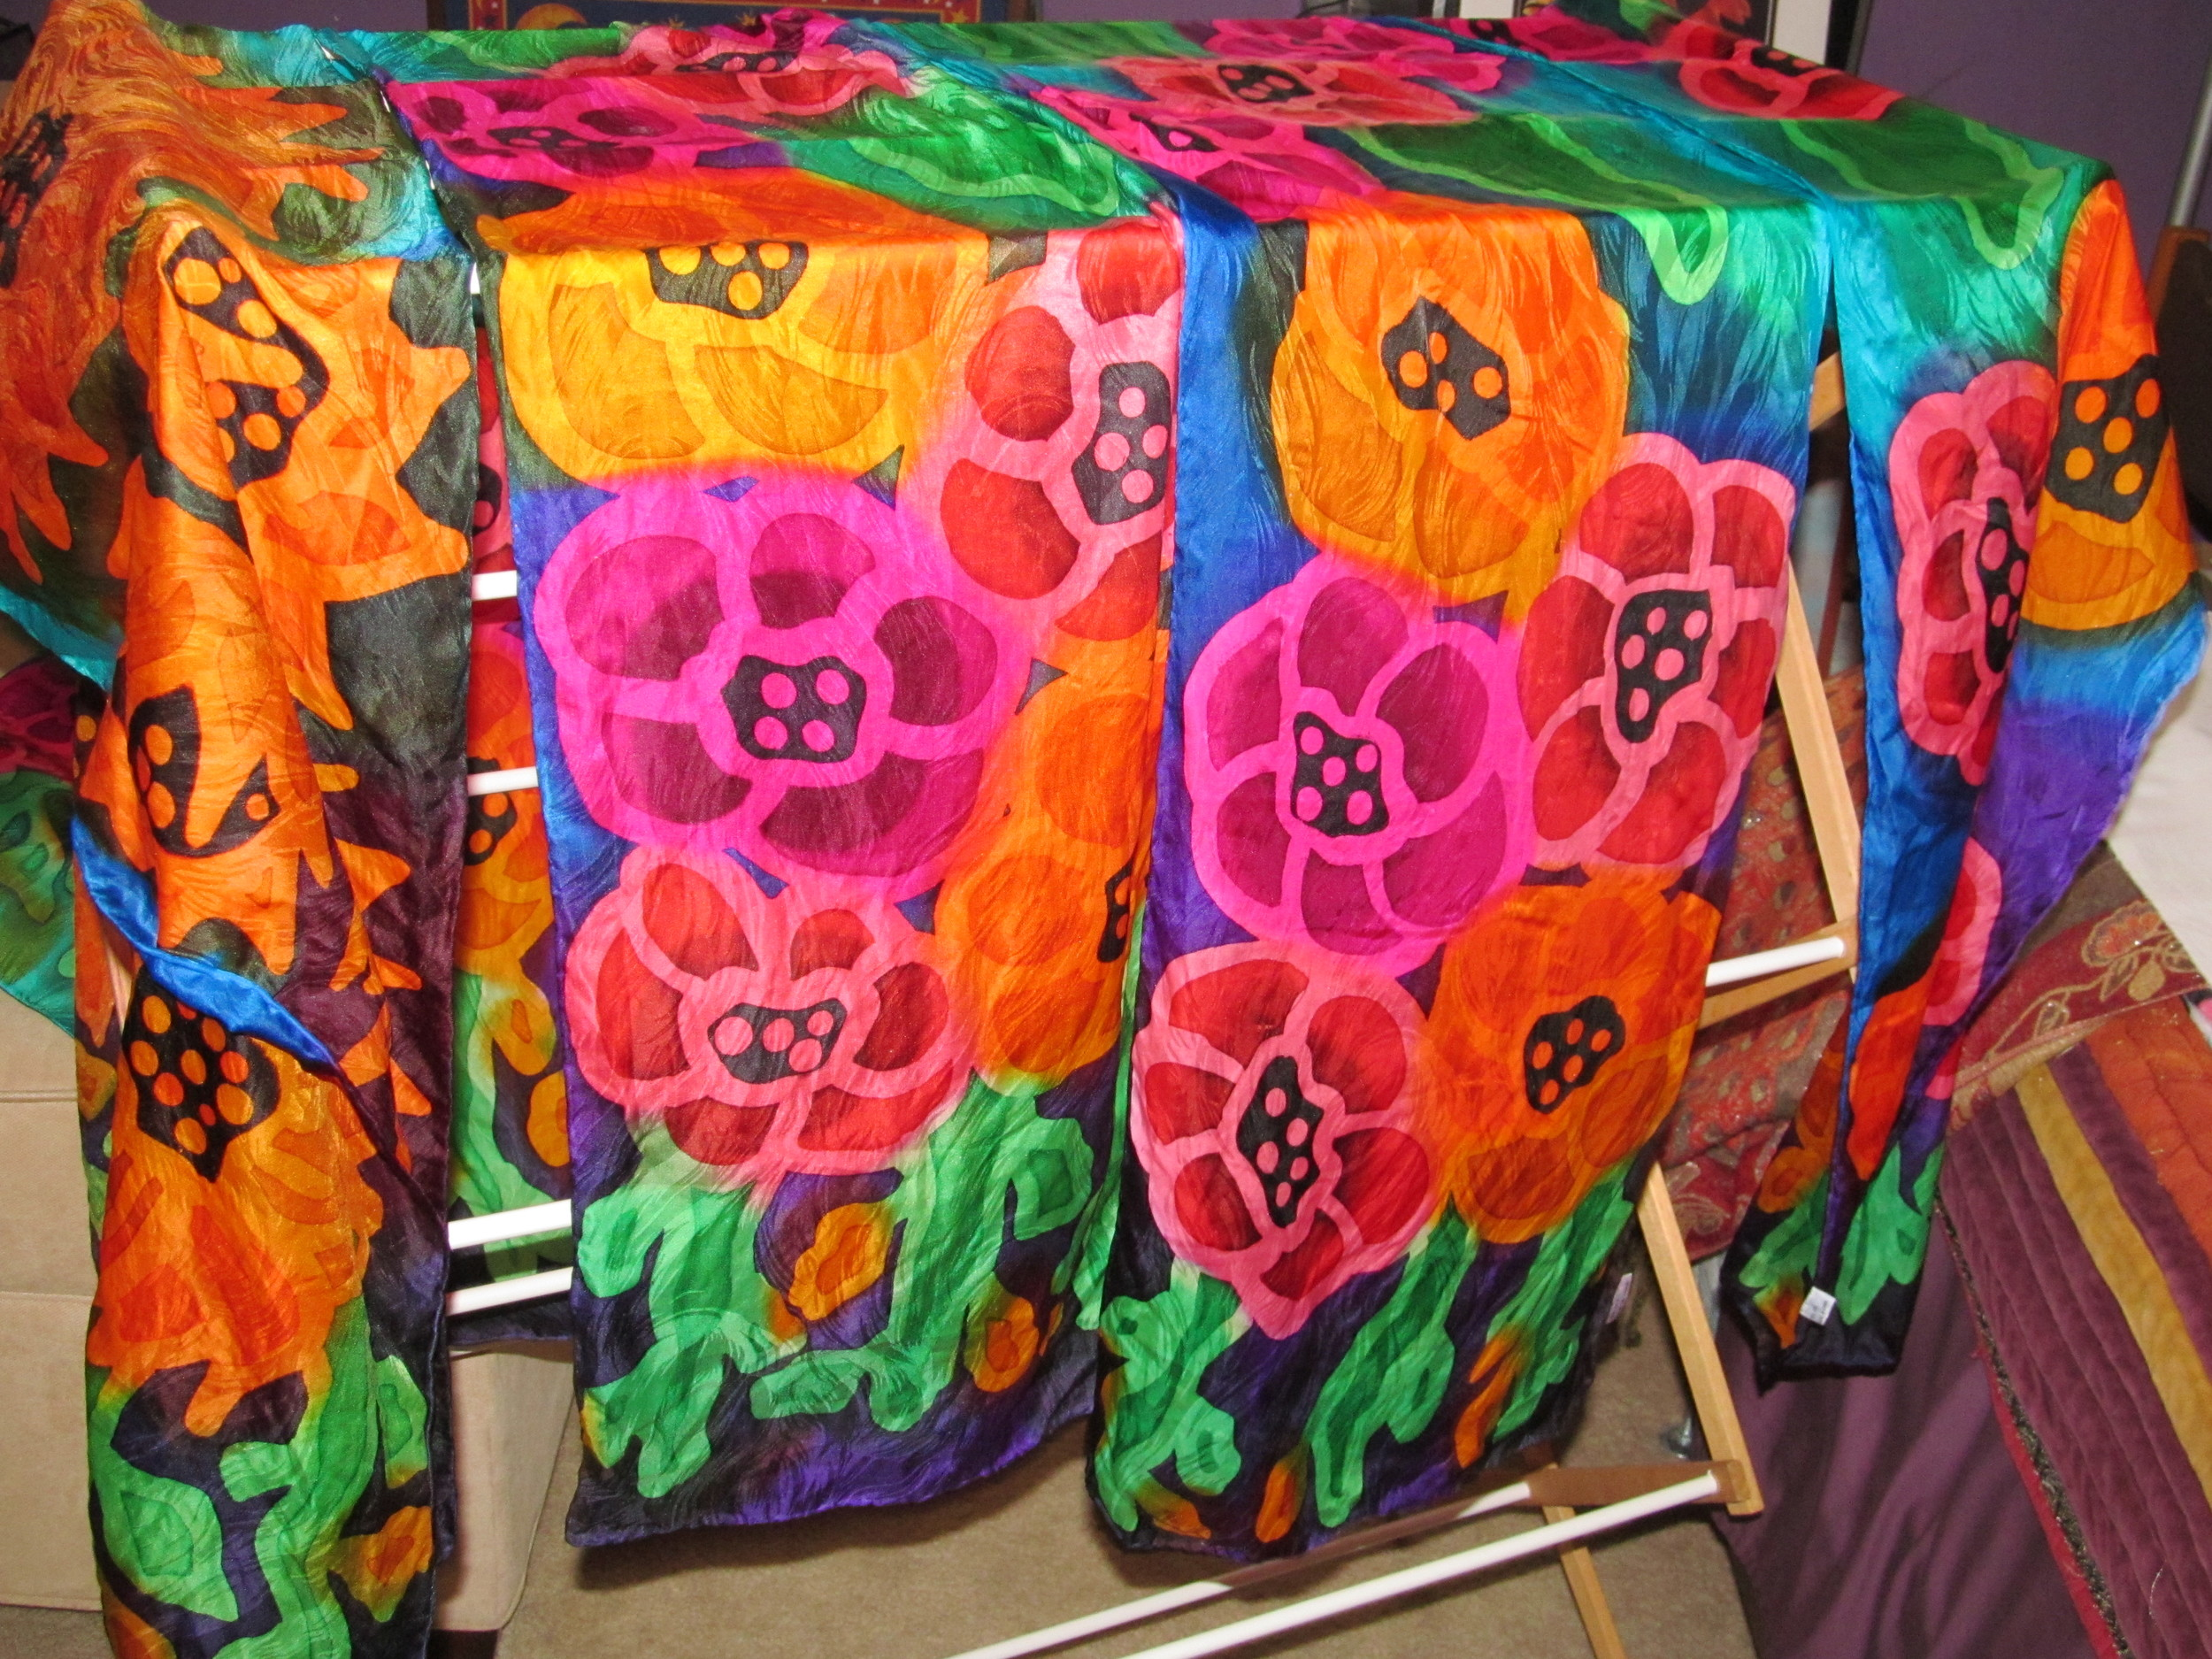 Hand painted silk scarves a dryin'!